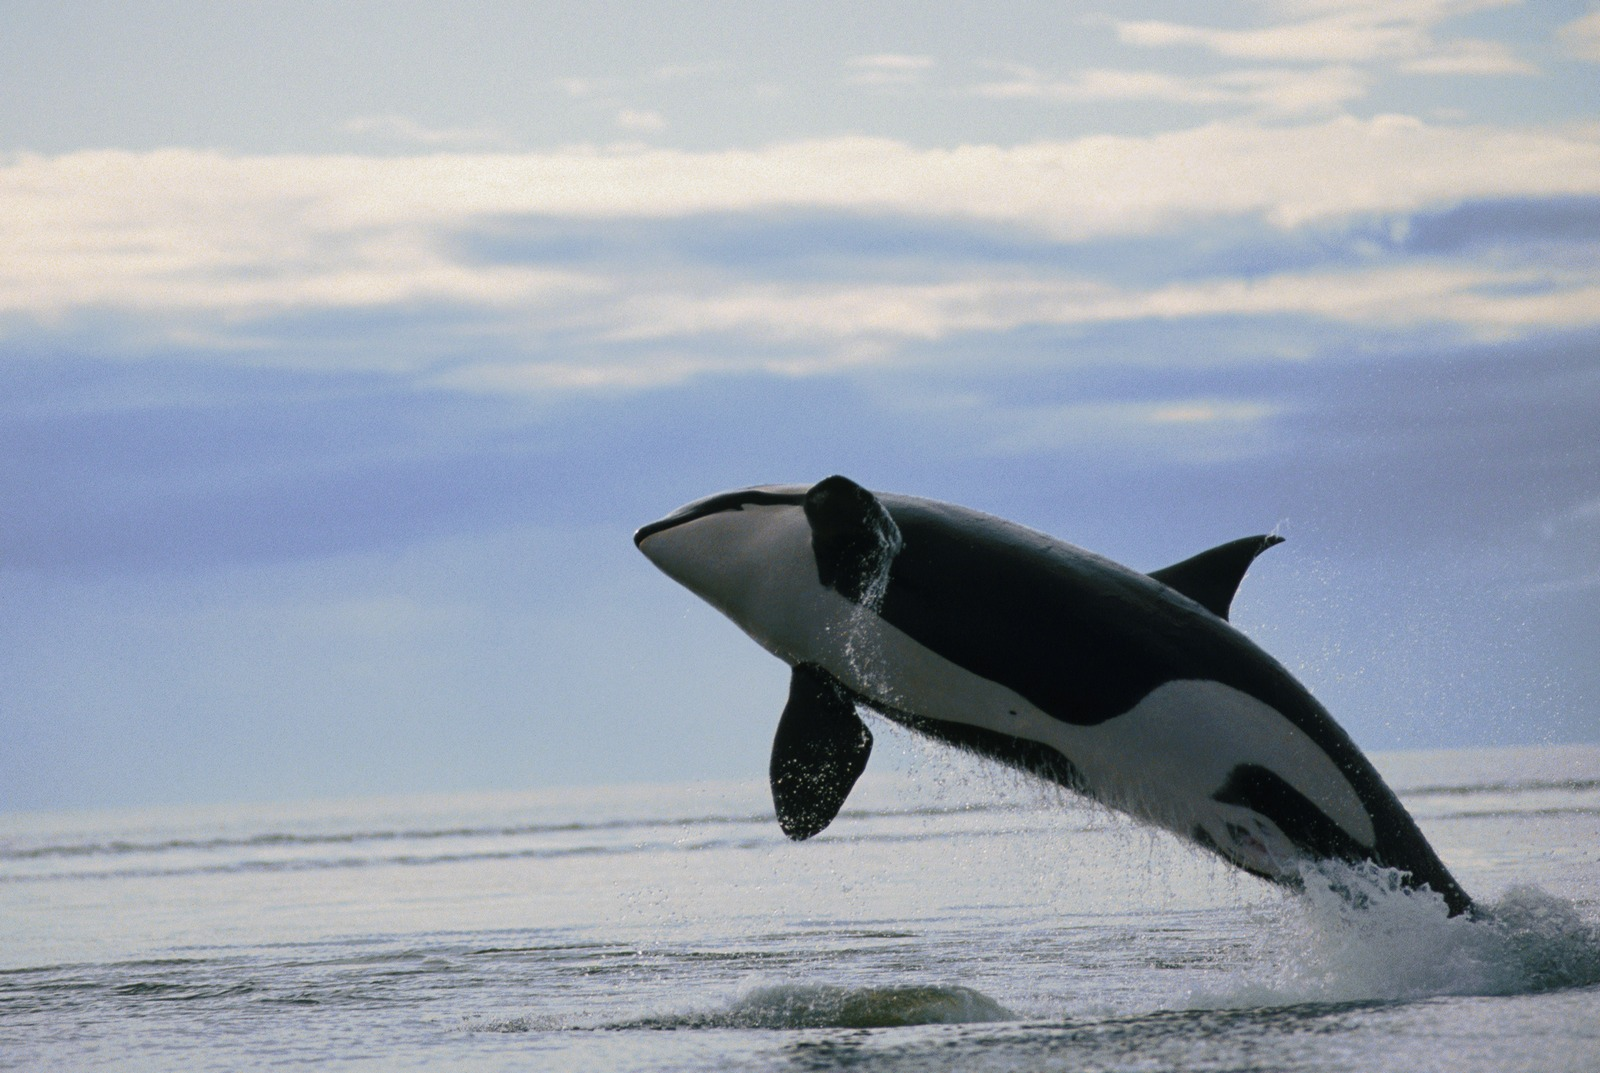 Malignant Sharks and Killer Whales   My image